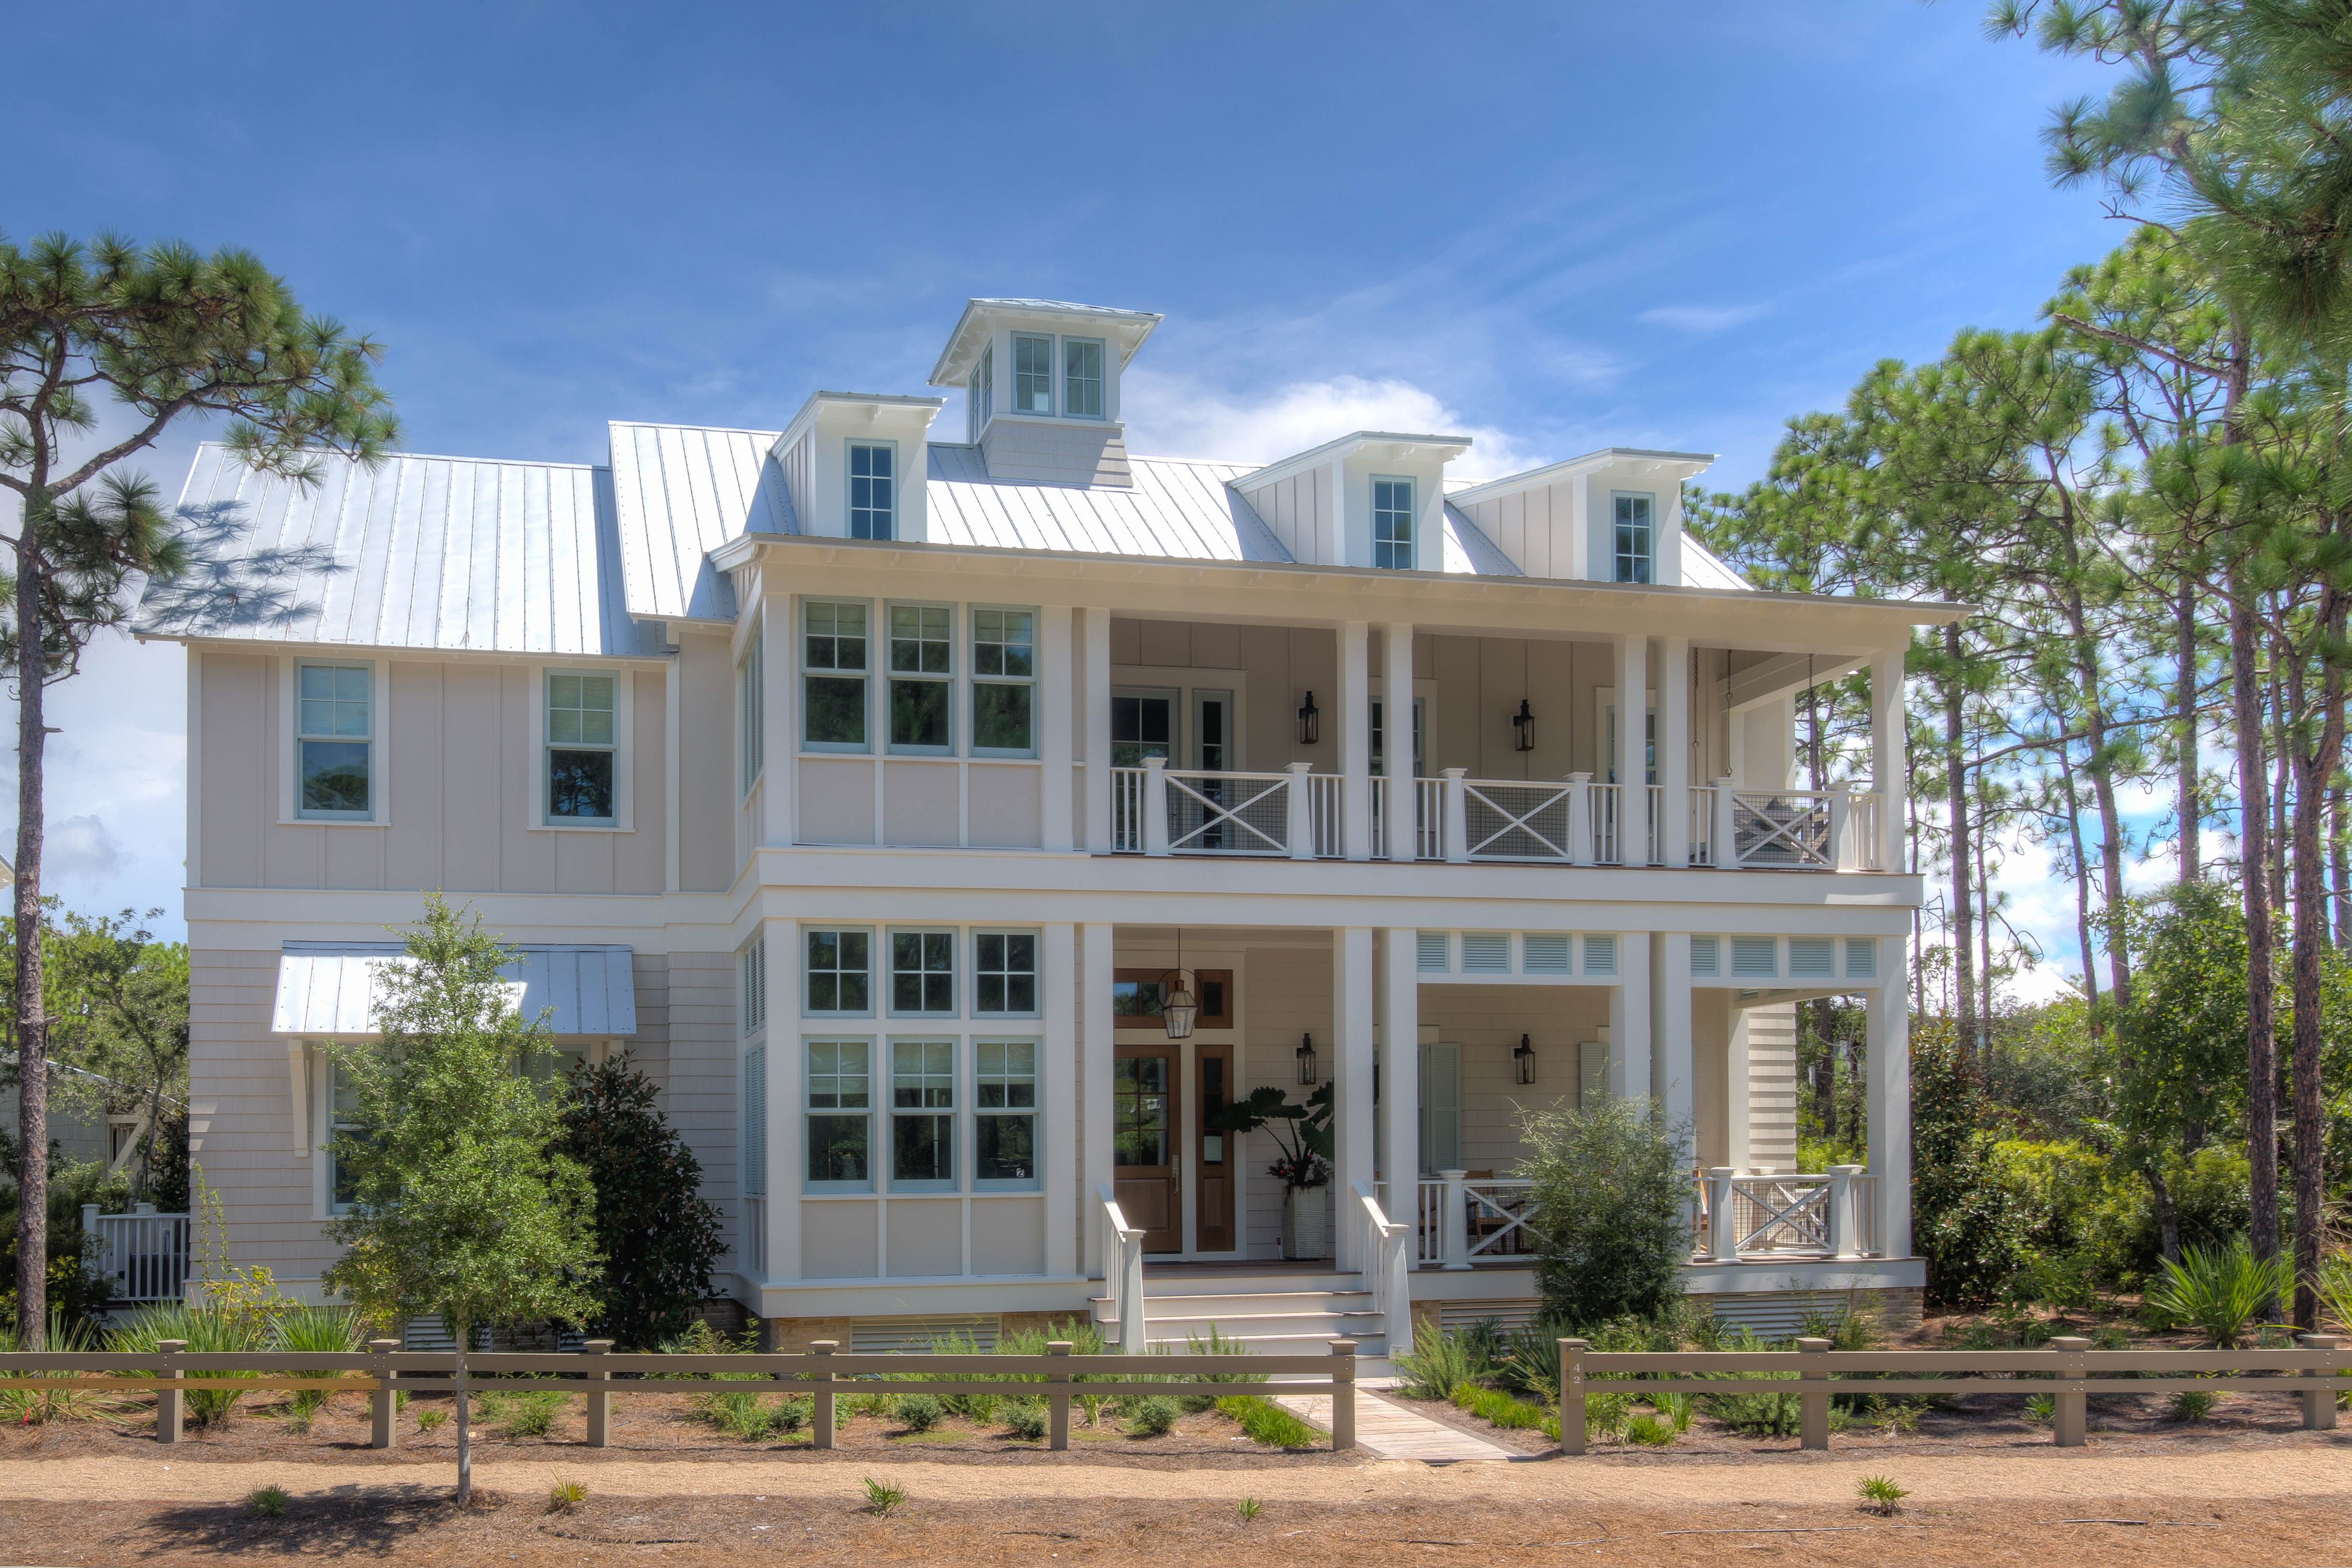 Alex And Cynthia Rice Custom Home Builders And Design Team Along